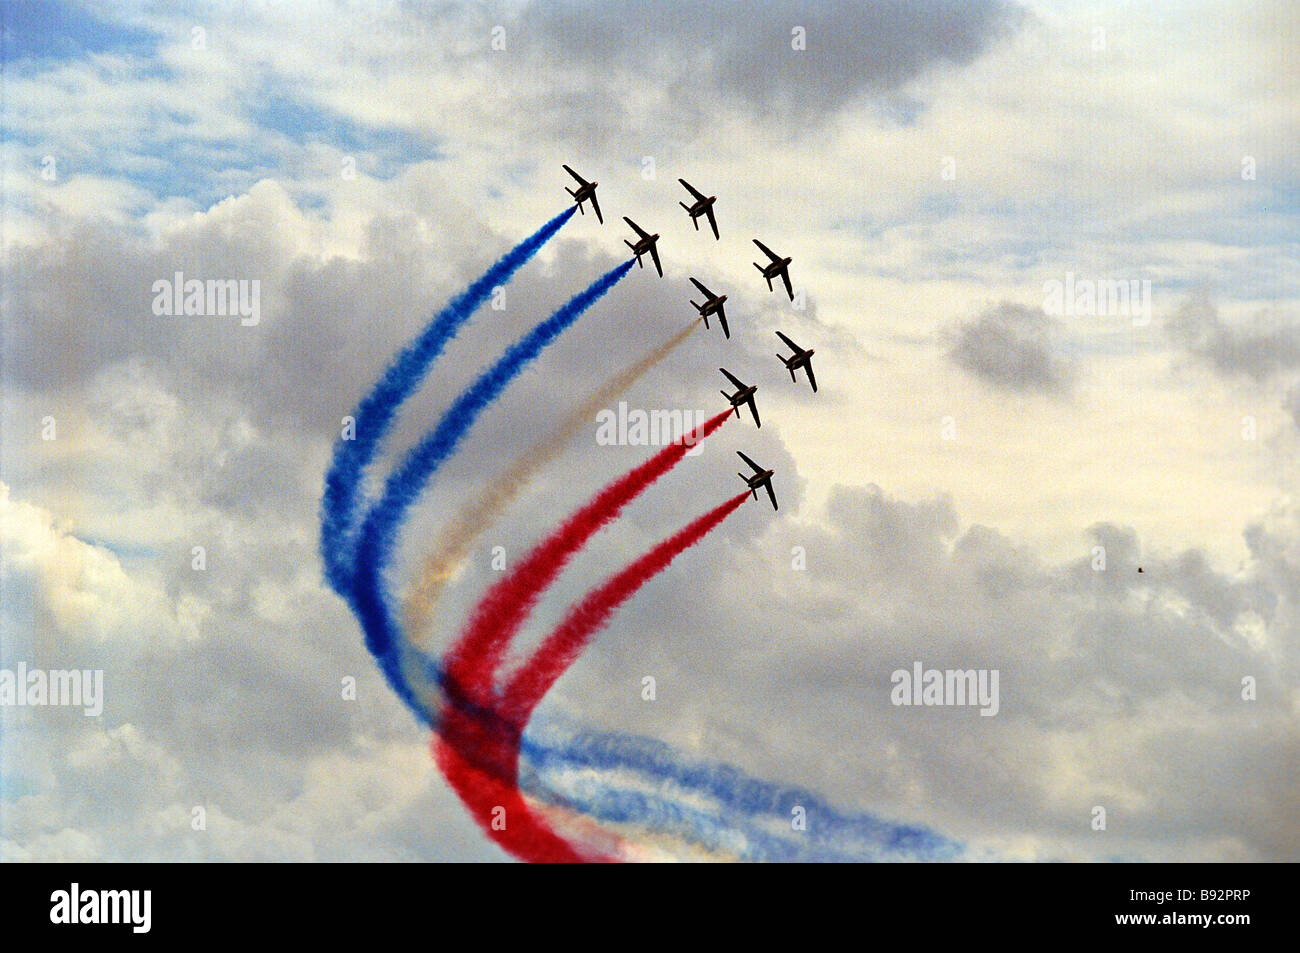 The Patrouille de France aerobatic team performing a 25 minute program at the MAKS 2003 air show - Stock Image